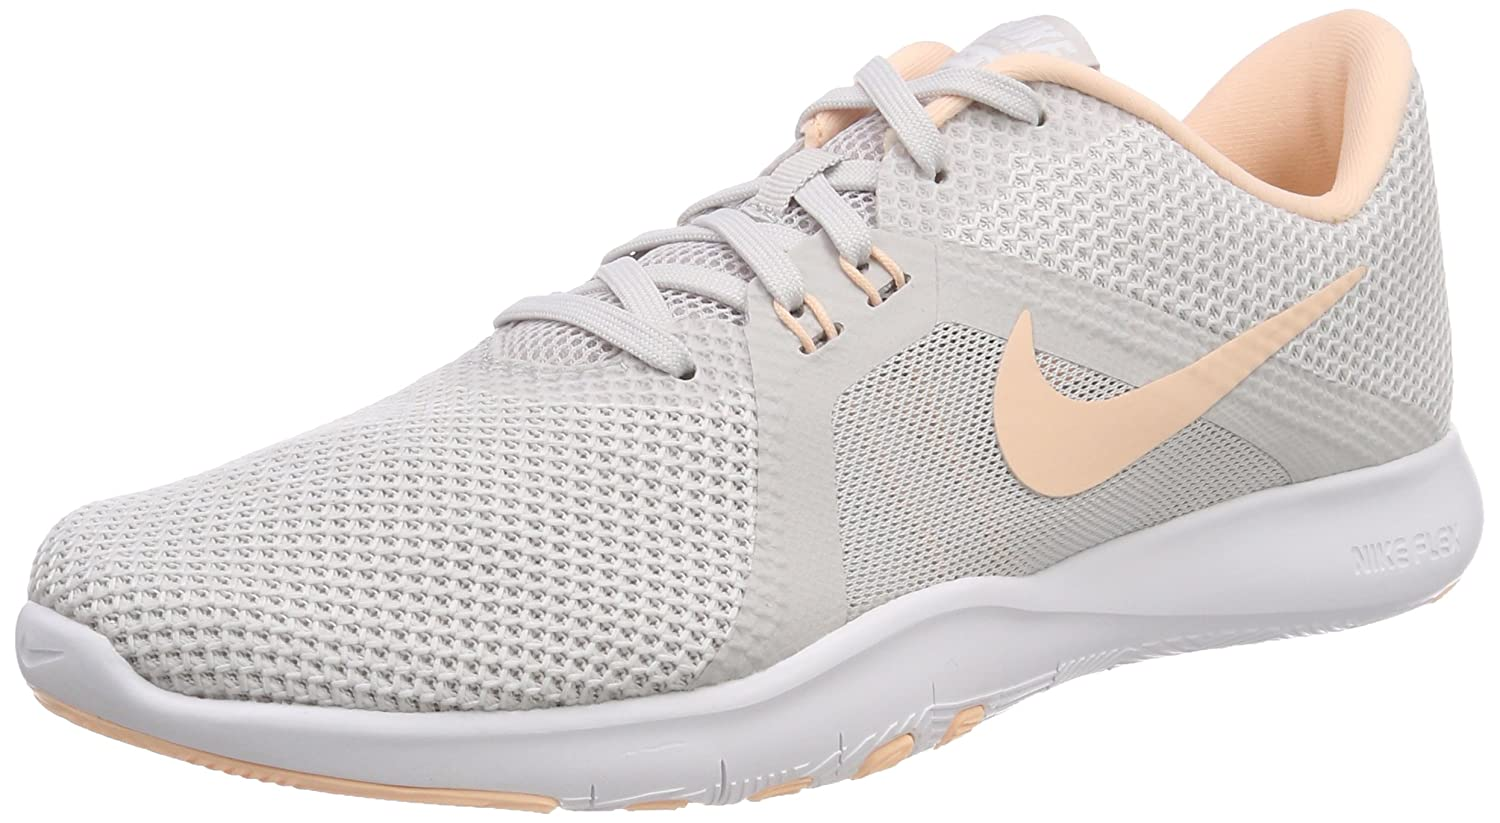 NIKE Women's Flex 8 Cross Trainer B0761YGMF6 6.5 B(M) US|Vast Grey/Crimson Tint-white